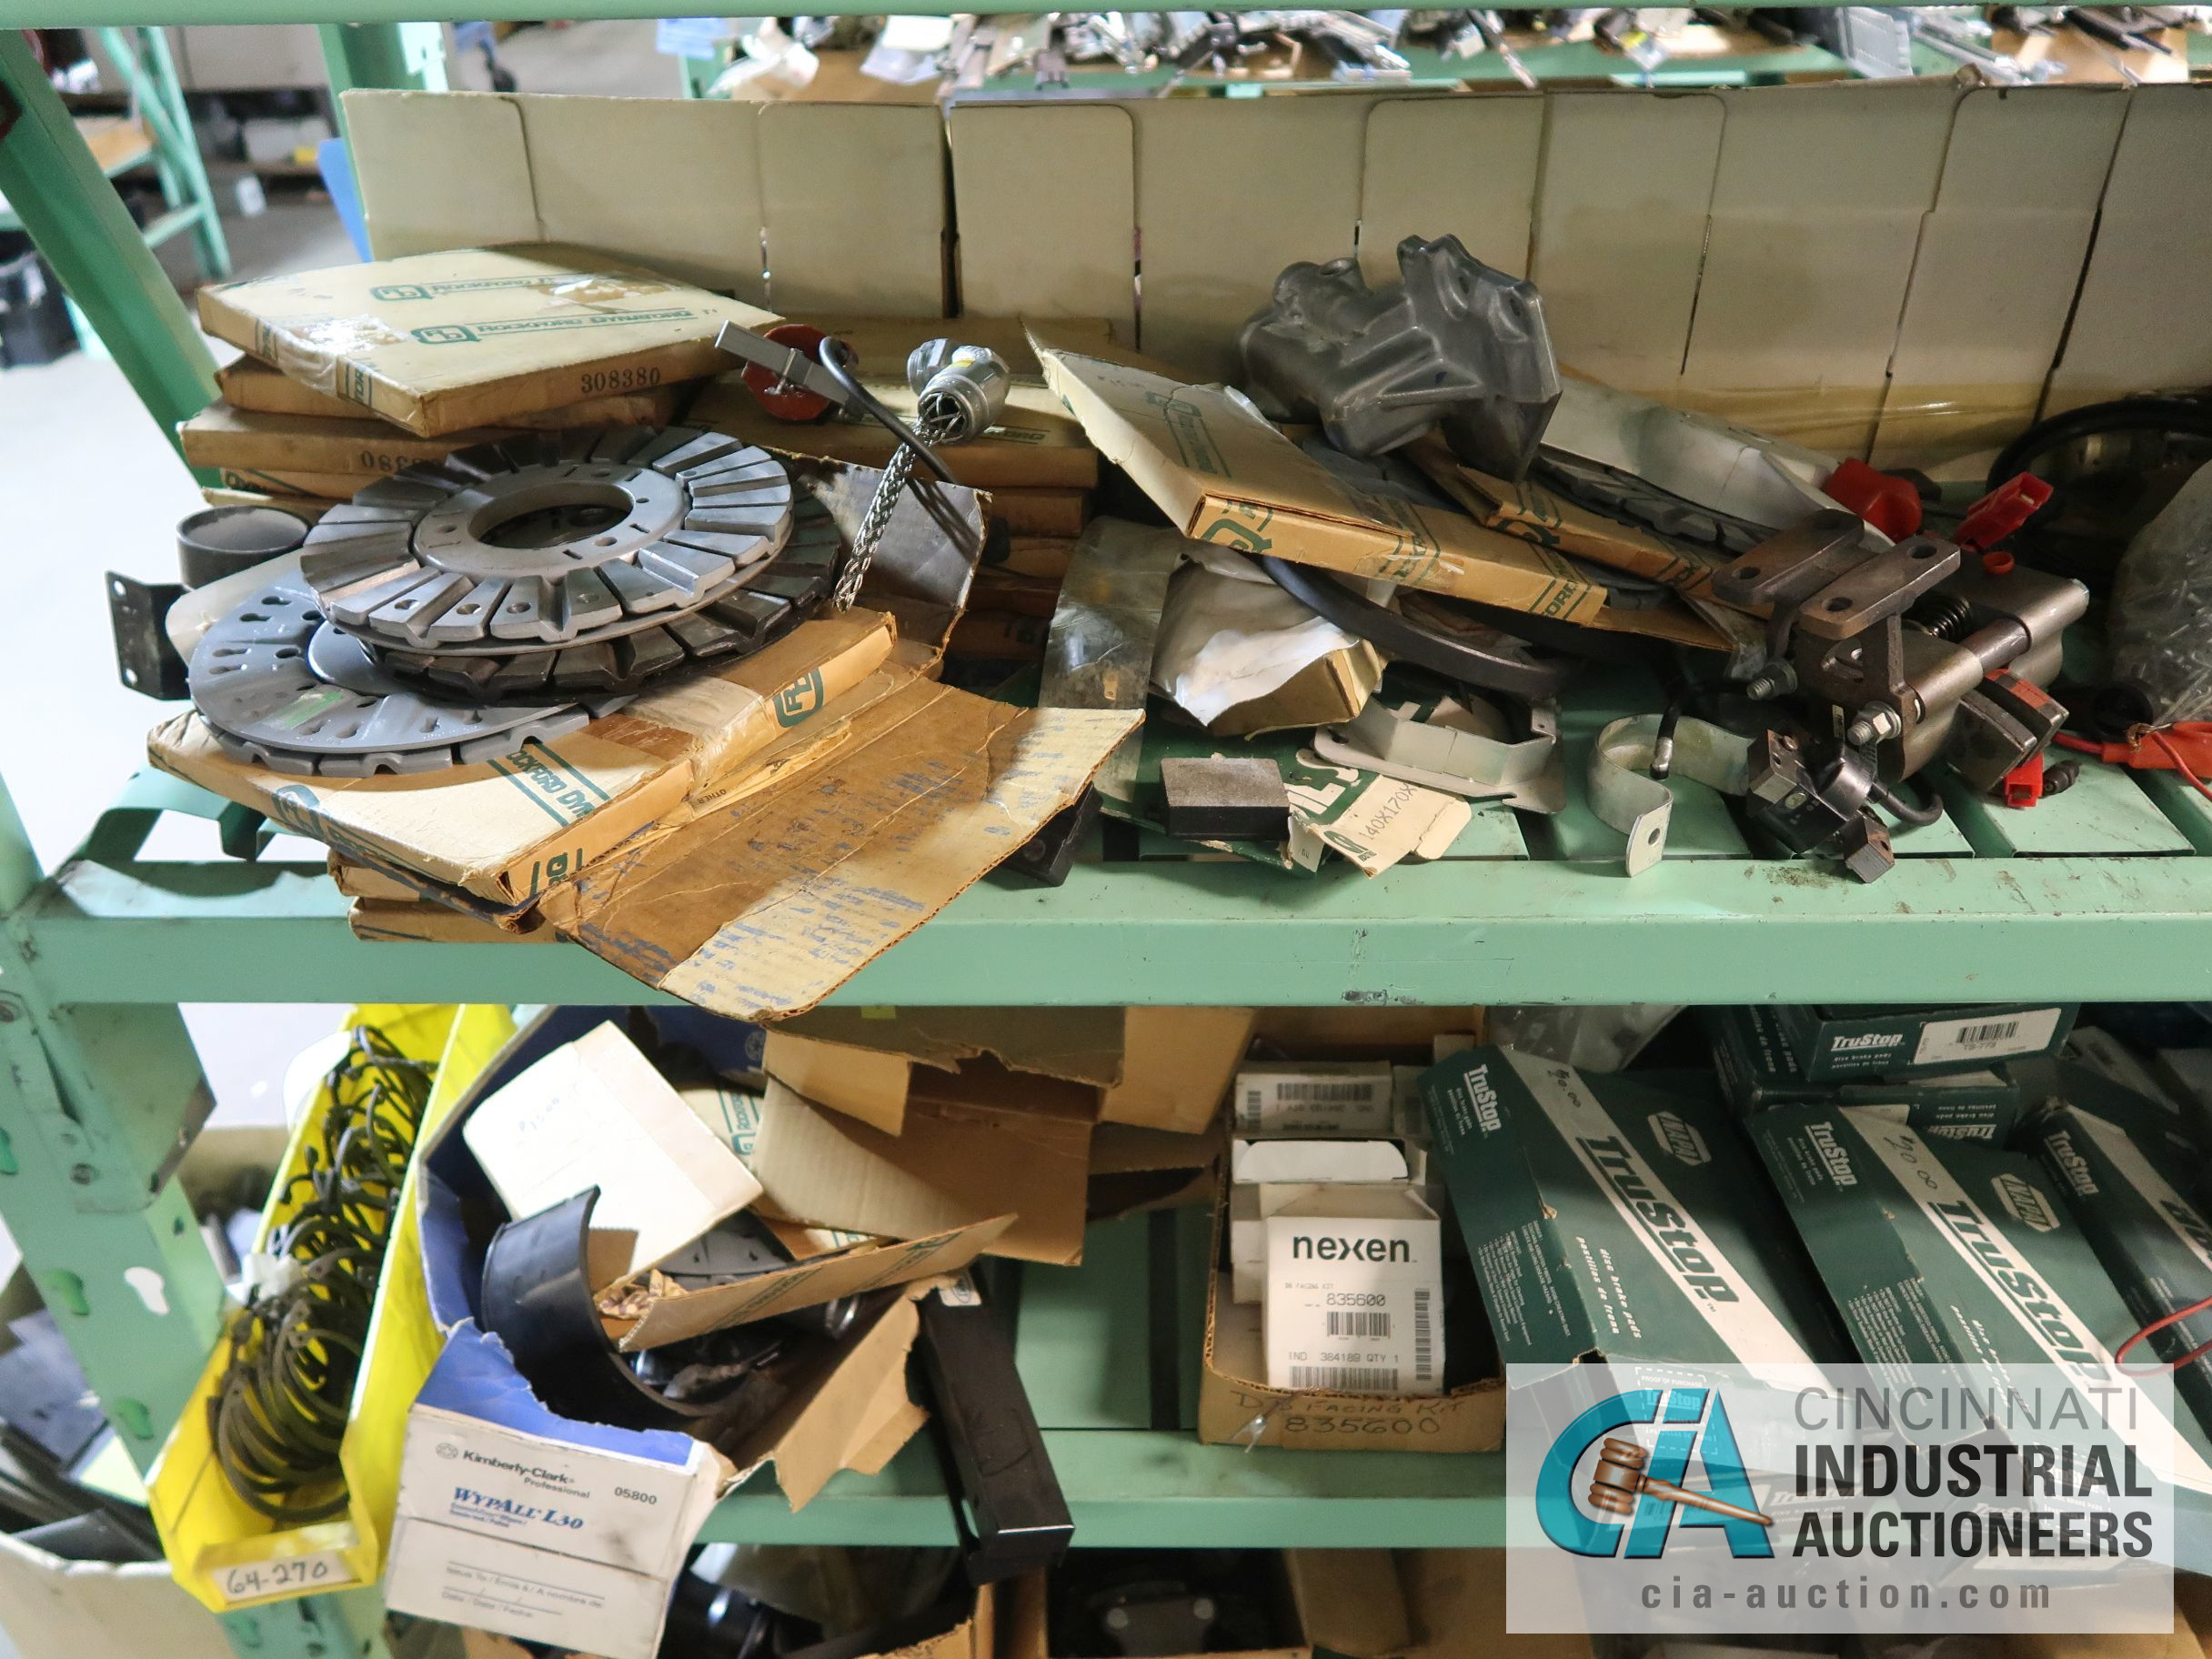 CONTENTS OF (6) RACKS INCLUDING MISCELLANEOUS AUTOMOTIVE PARTS, BREAKS, ROTORS, GASKETS, MOUNTING - Image 37 of 38